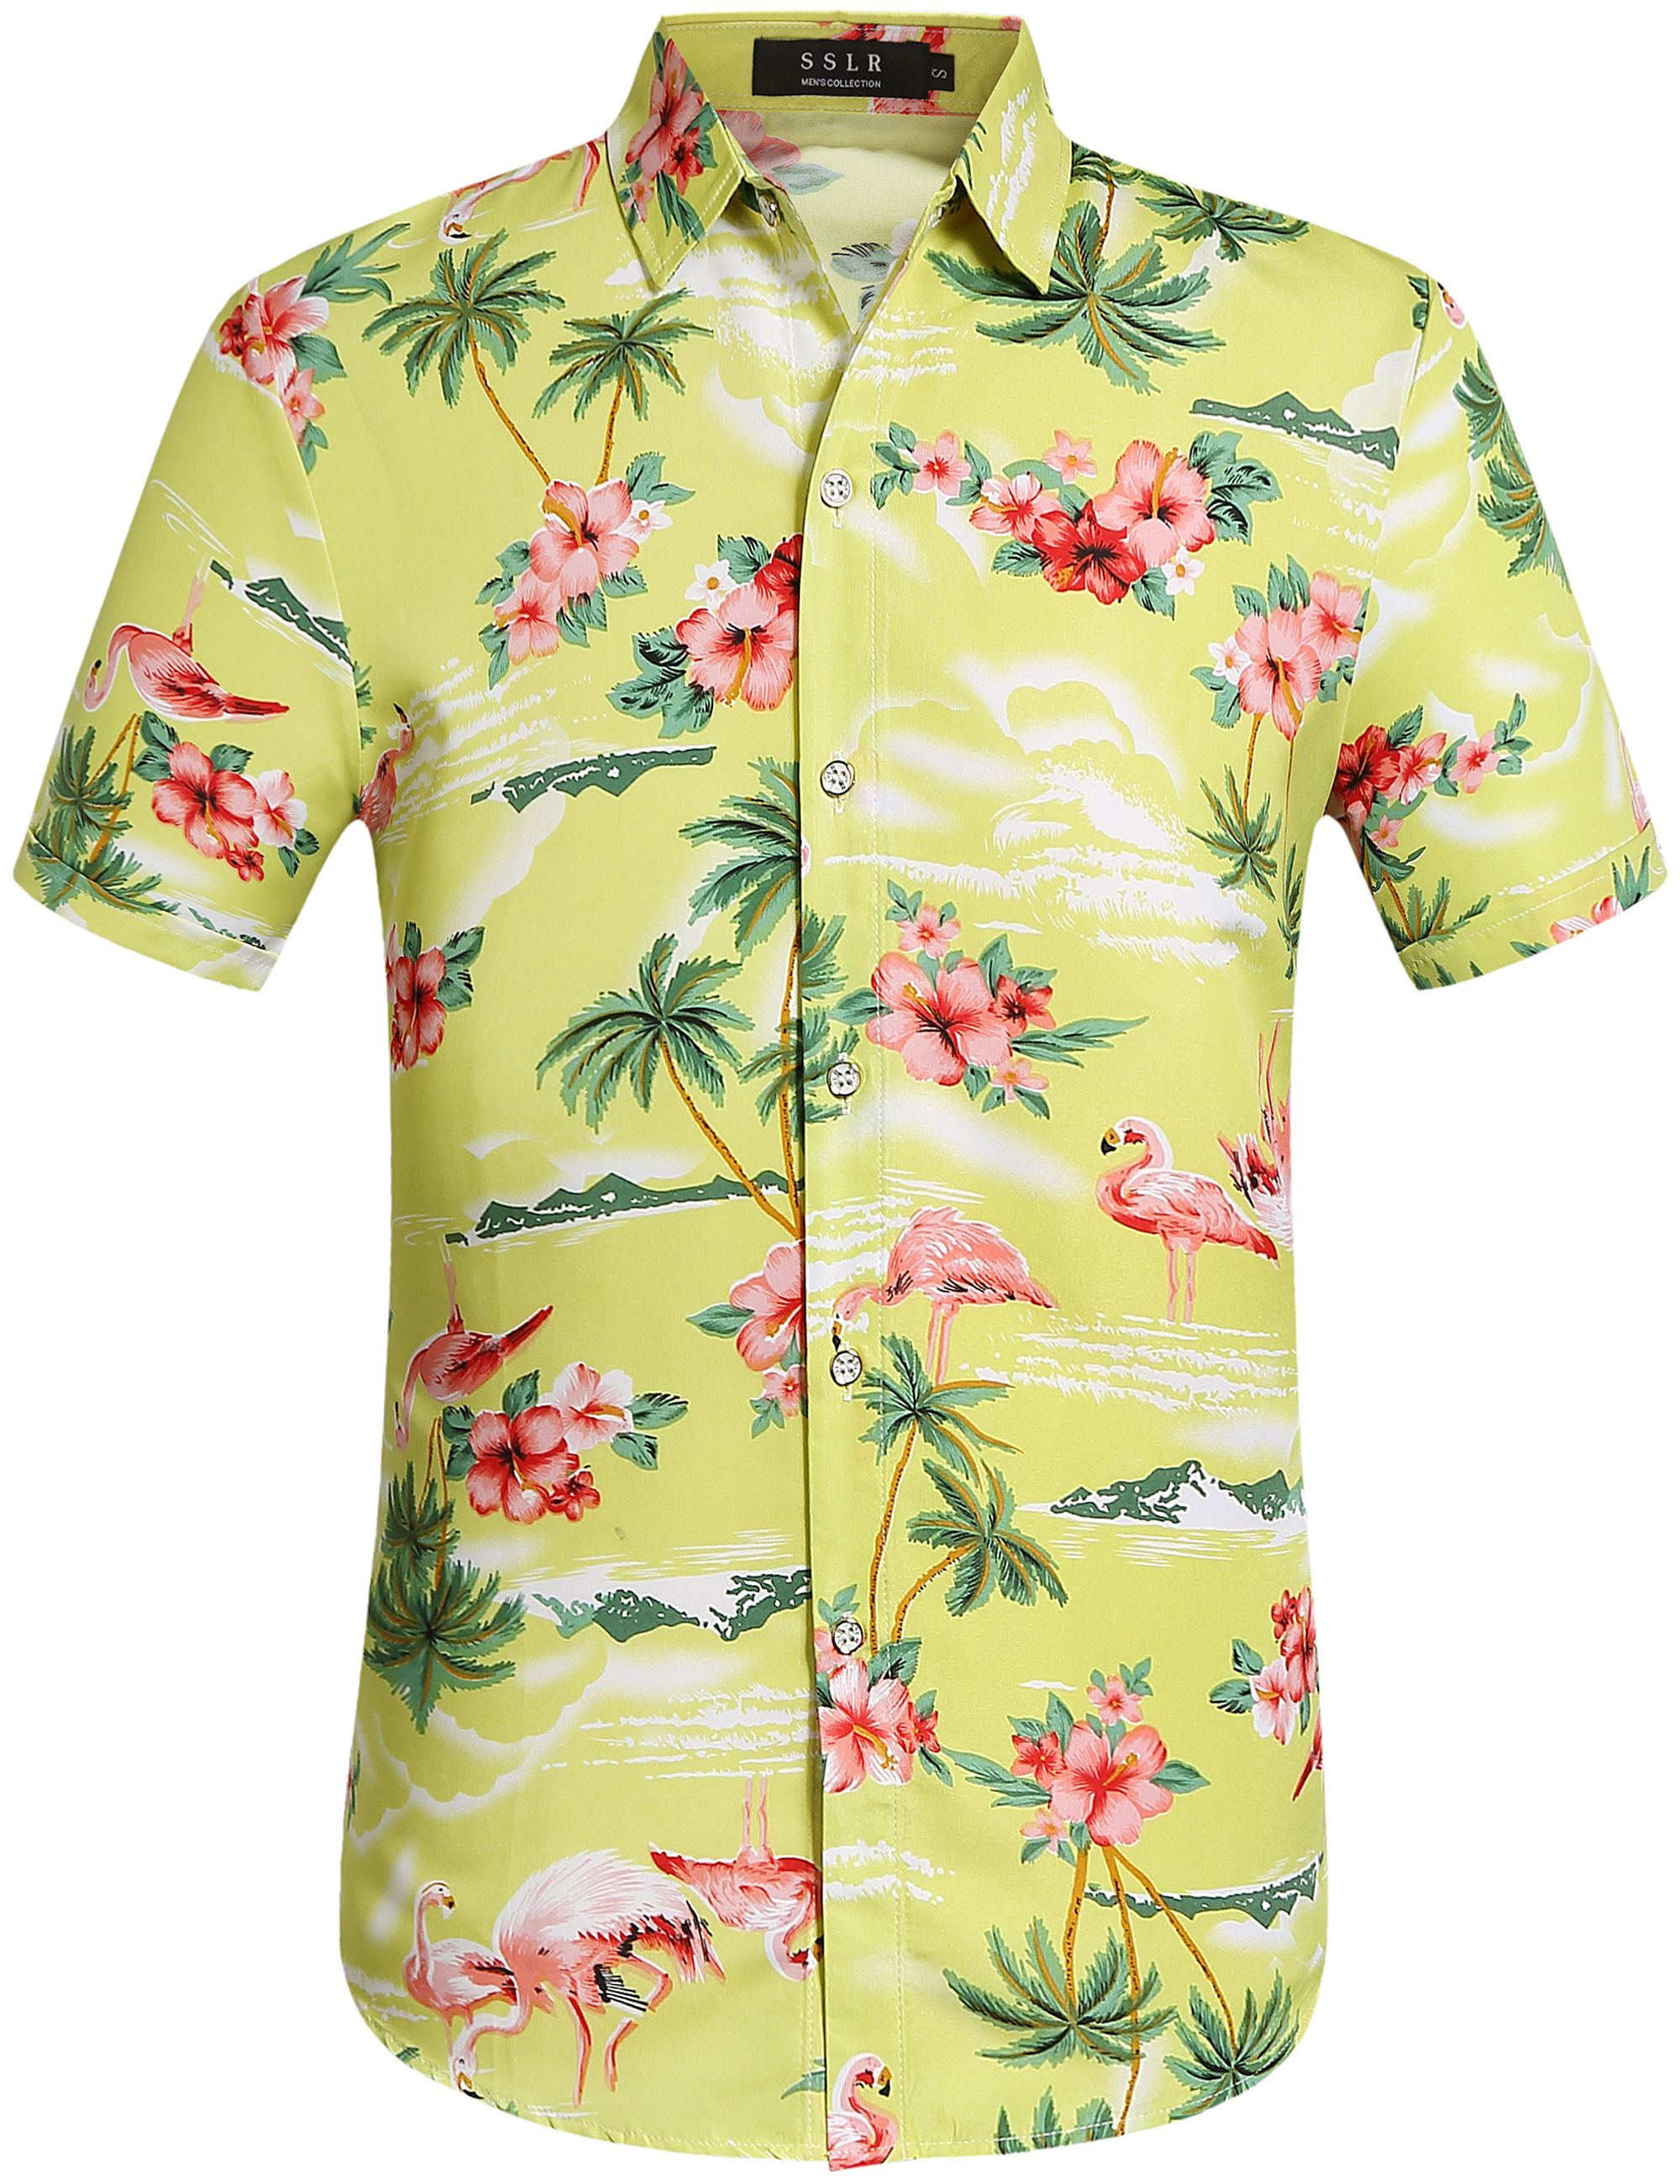 0372284a Men's Tropical Floral Flamingo Hawaiian Holiday Party Shirt, Flamingo Hawaiian  Shirt #flamingo #hawai #shirt #men